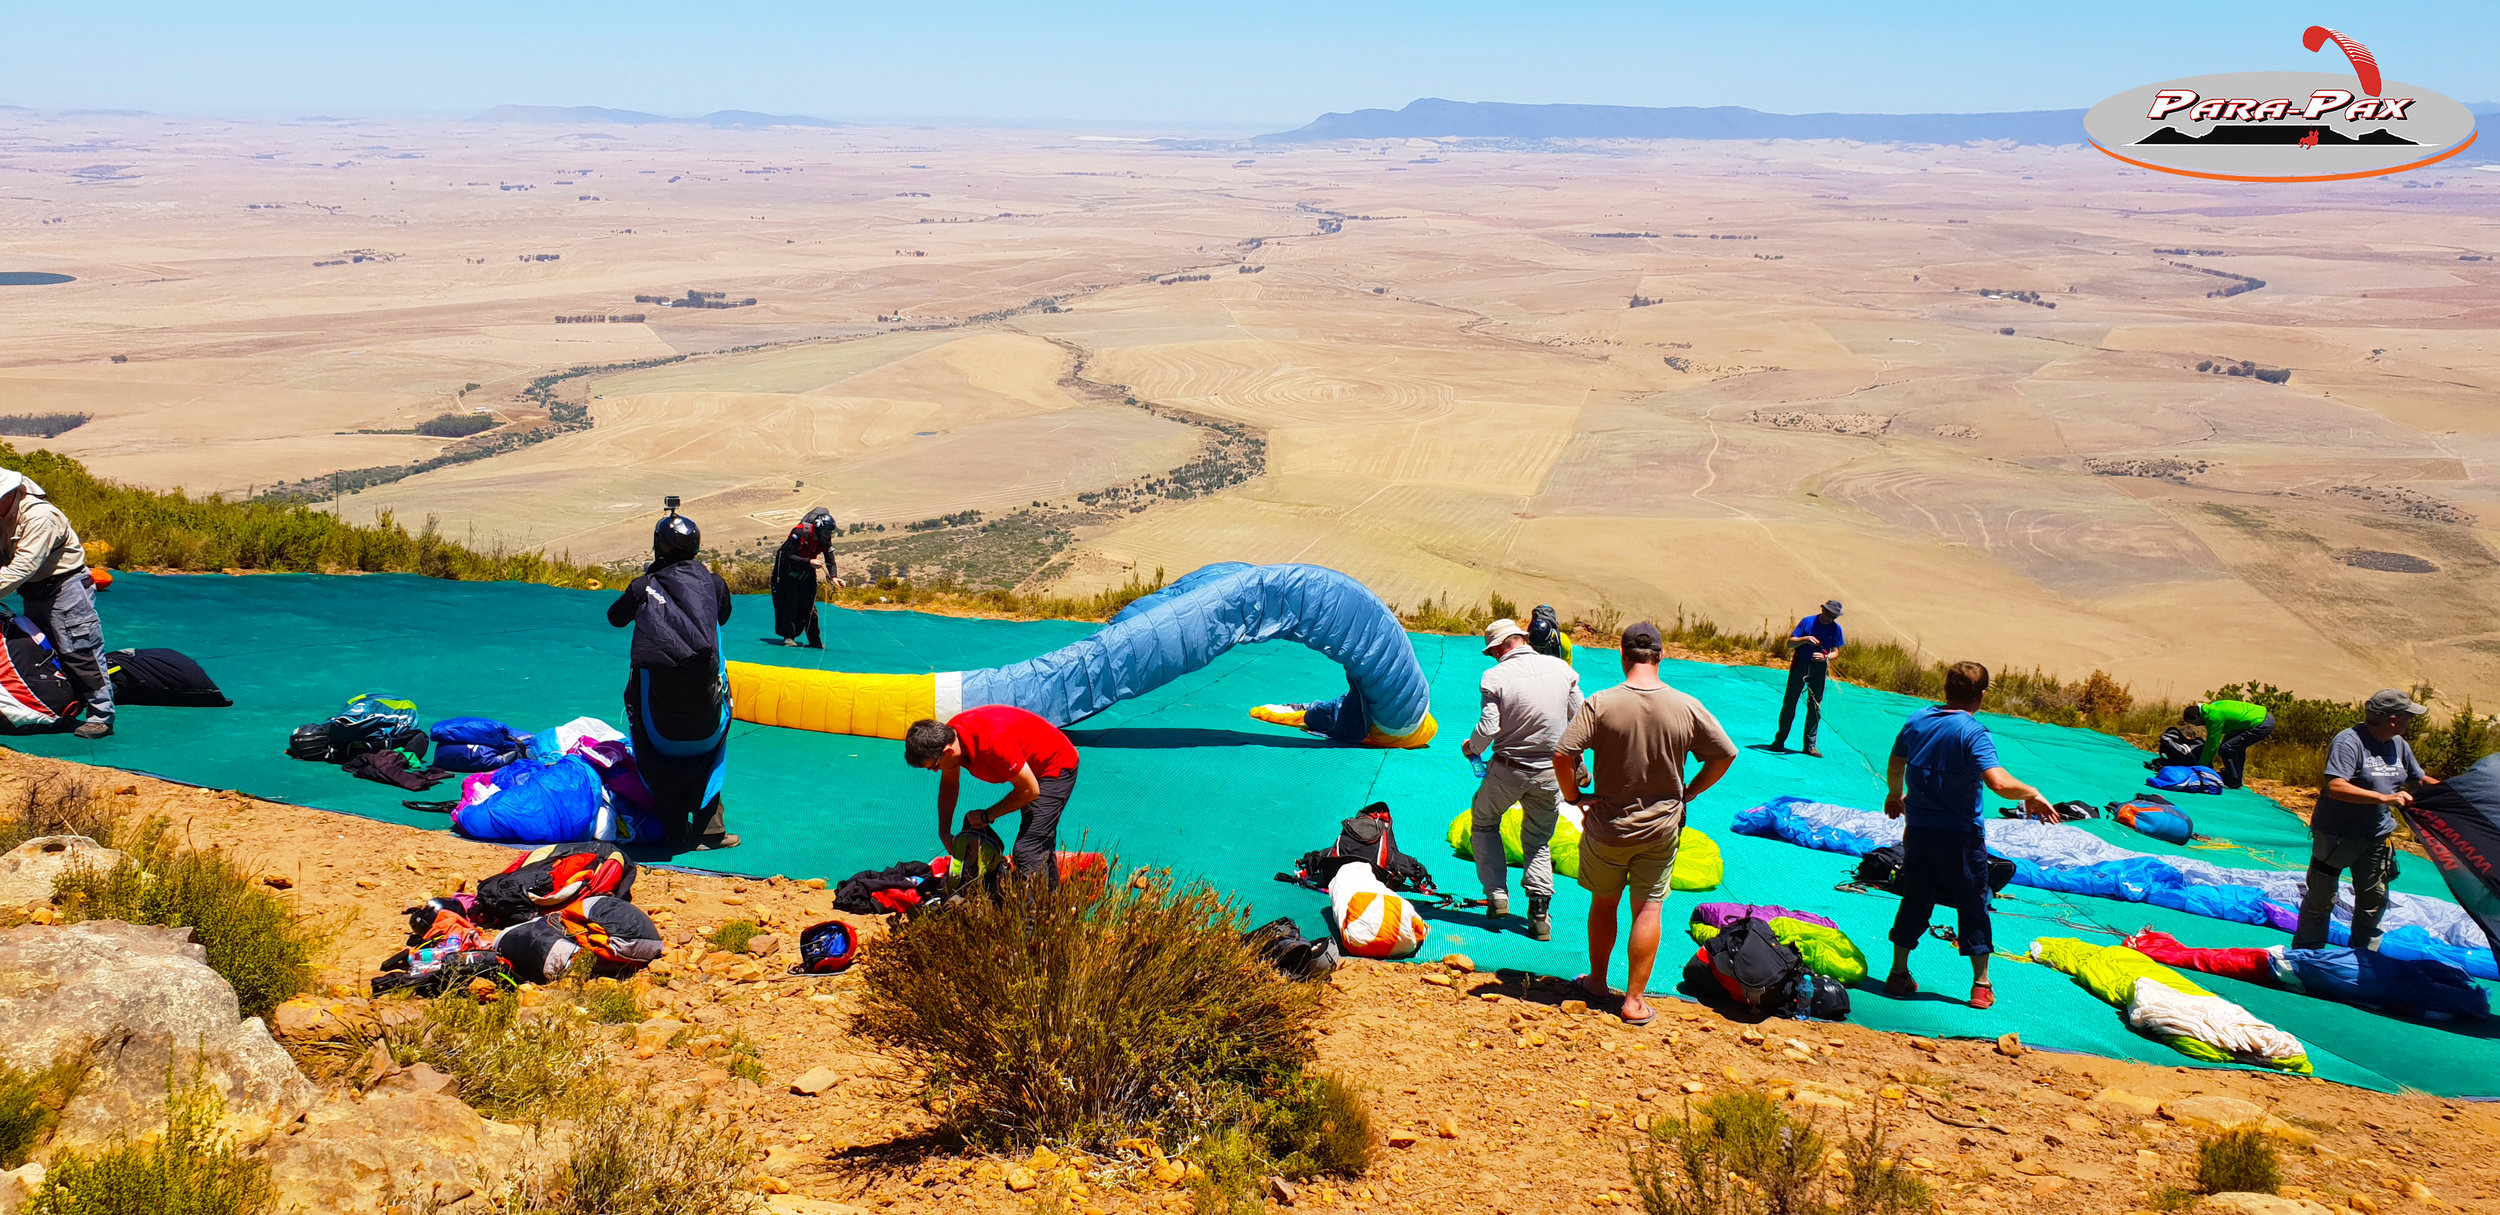 DAY TOUR - PORTERVILLE   Porterville is South Africa's top Cross Country site. Annual international competitions take place here. Here we fly far! Beautiful waterfalls,mountains, sunsets, bbq and beer . We make an early start from Cape Town driving the 130kms.